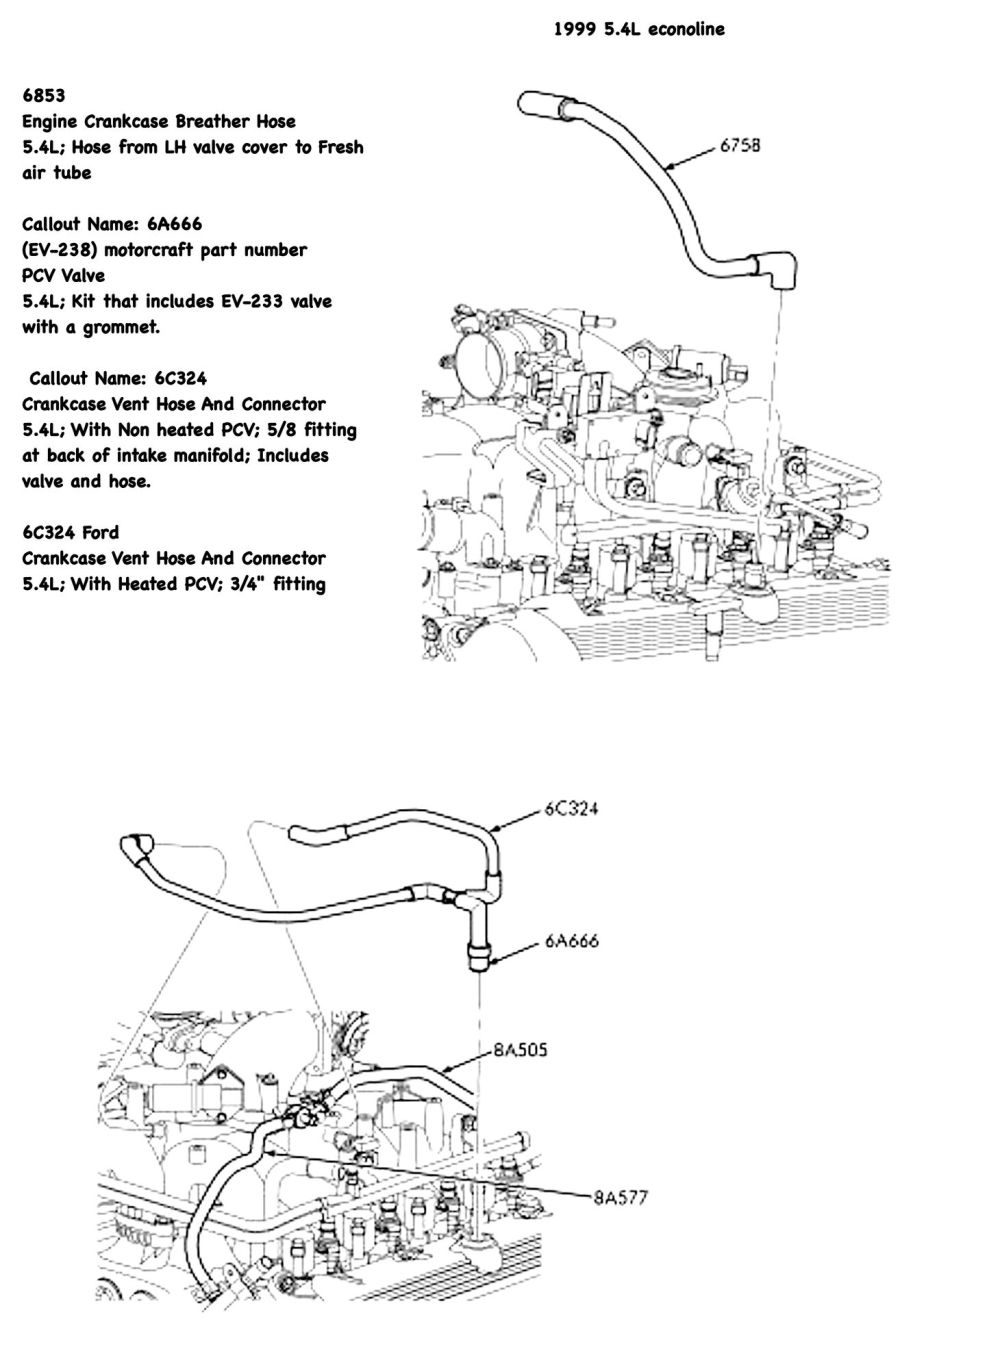 medium resolution of engine parts diagram ford 5 4l v8 wiring diagram usedengine parts diagram ford 5 4l v8